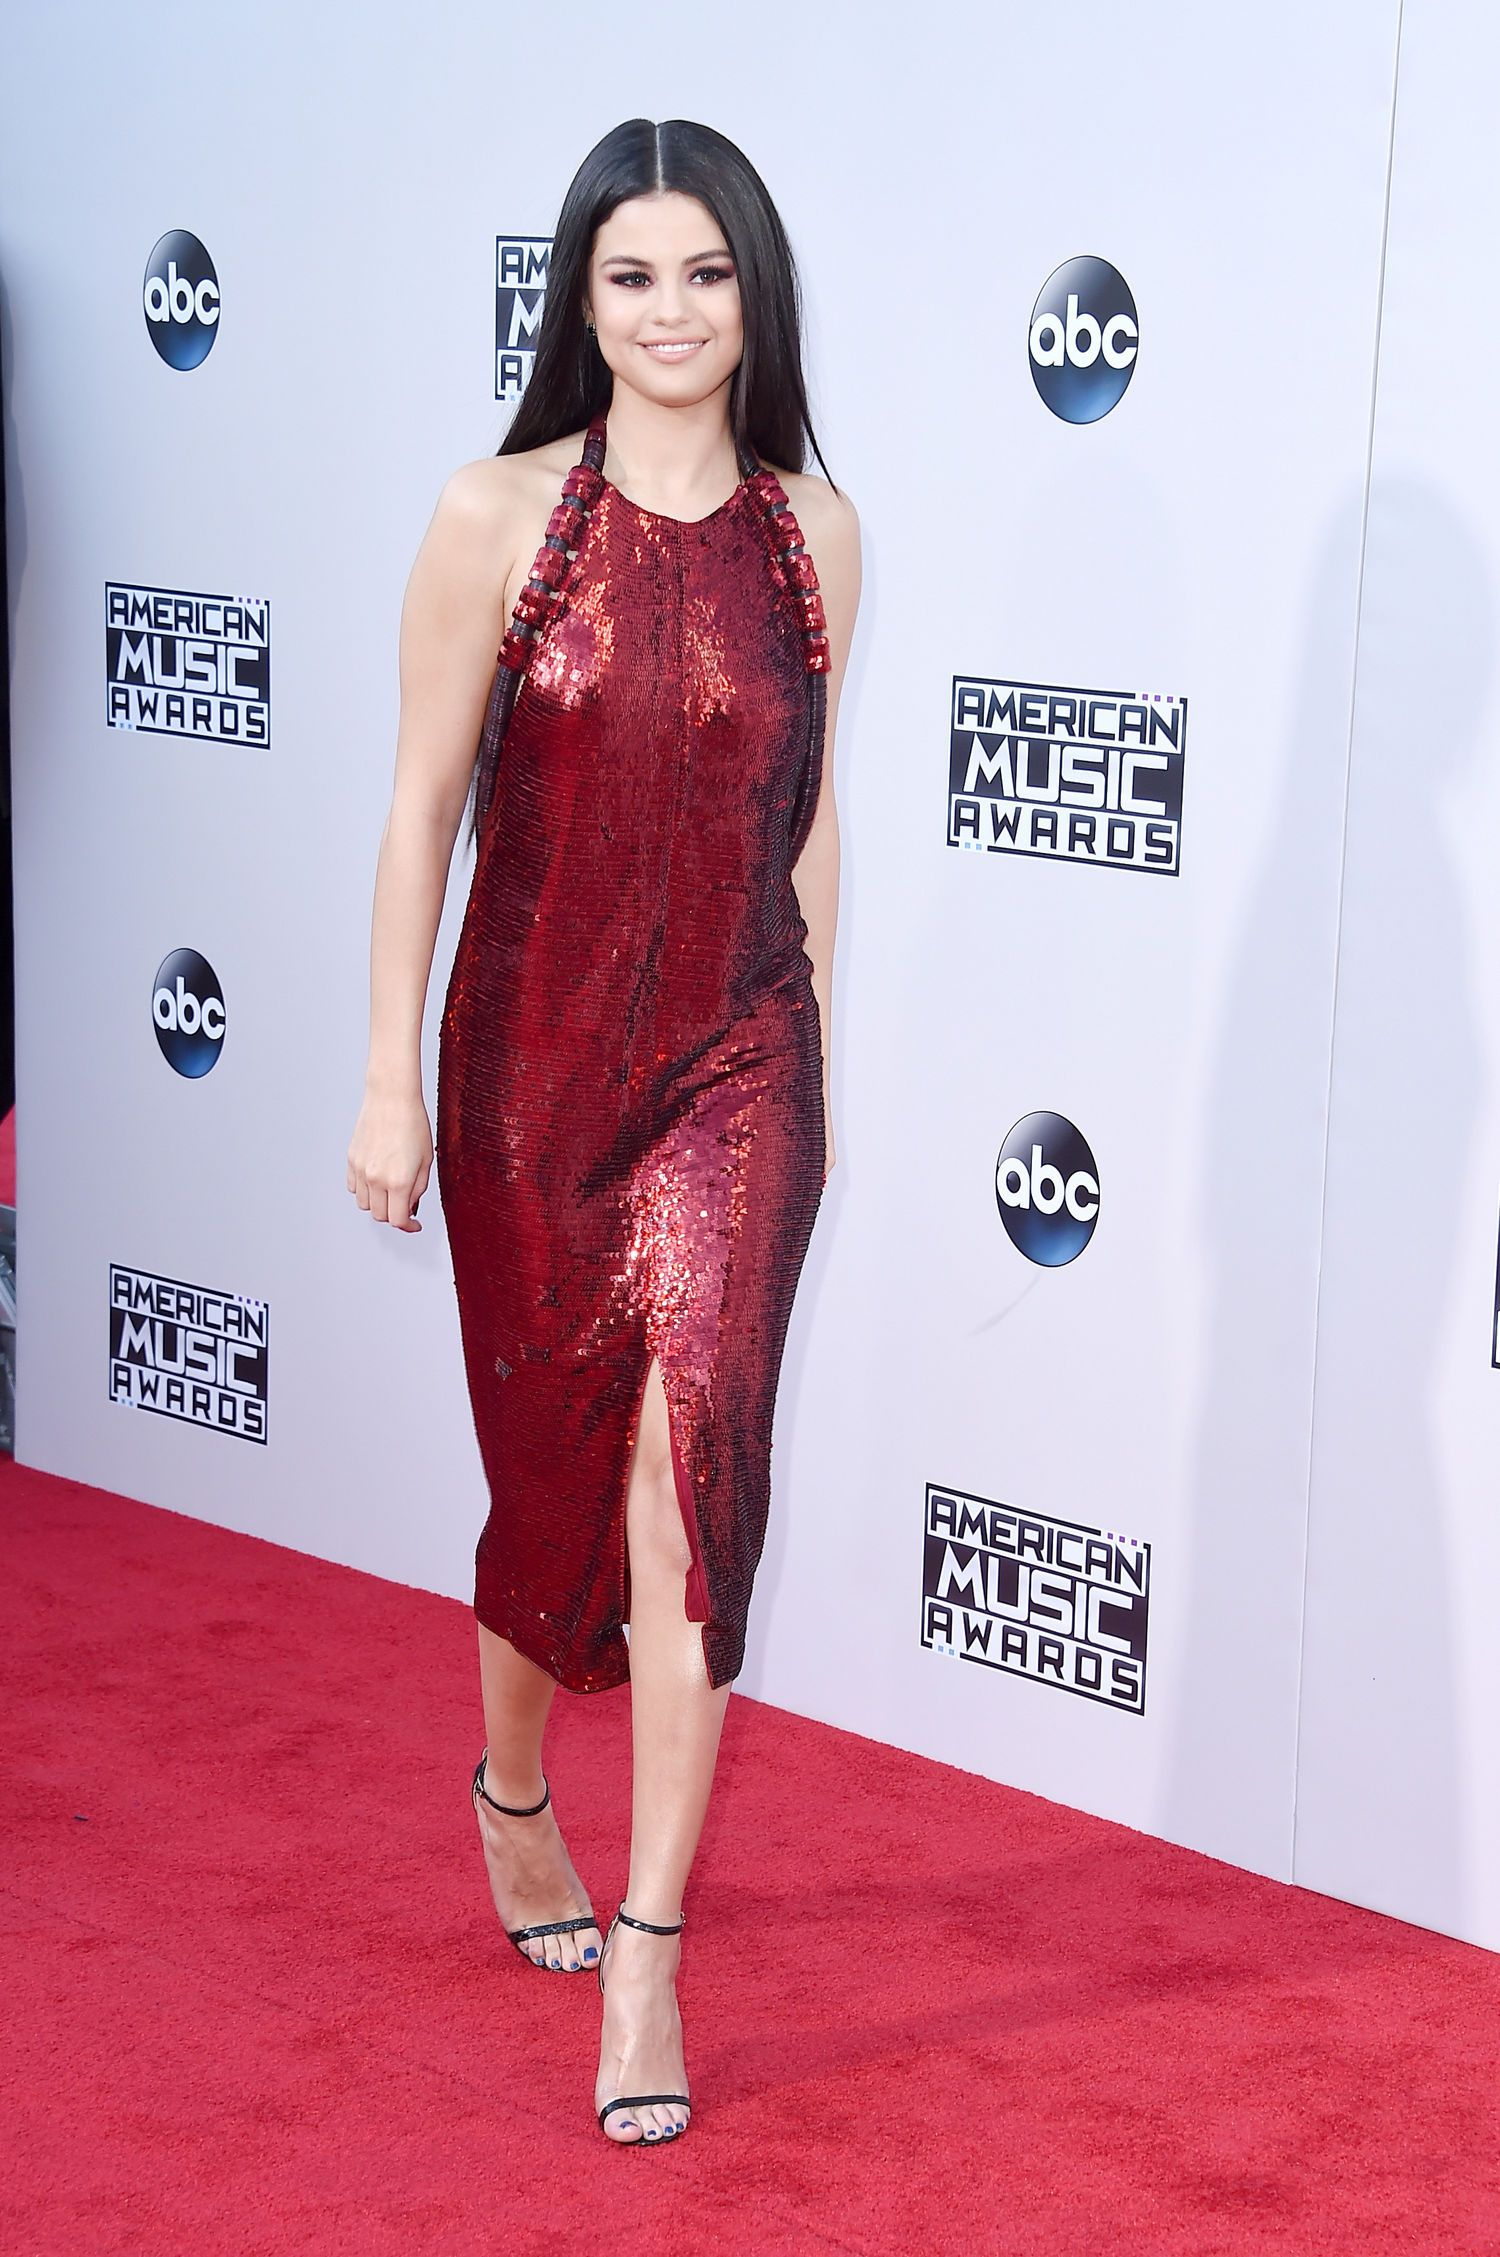 6867d1b23c From Selena Gomez to Zendaya, the Very Best Dresses From the AMA Red ...